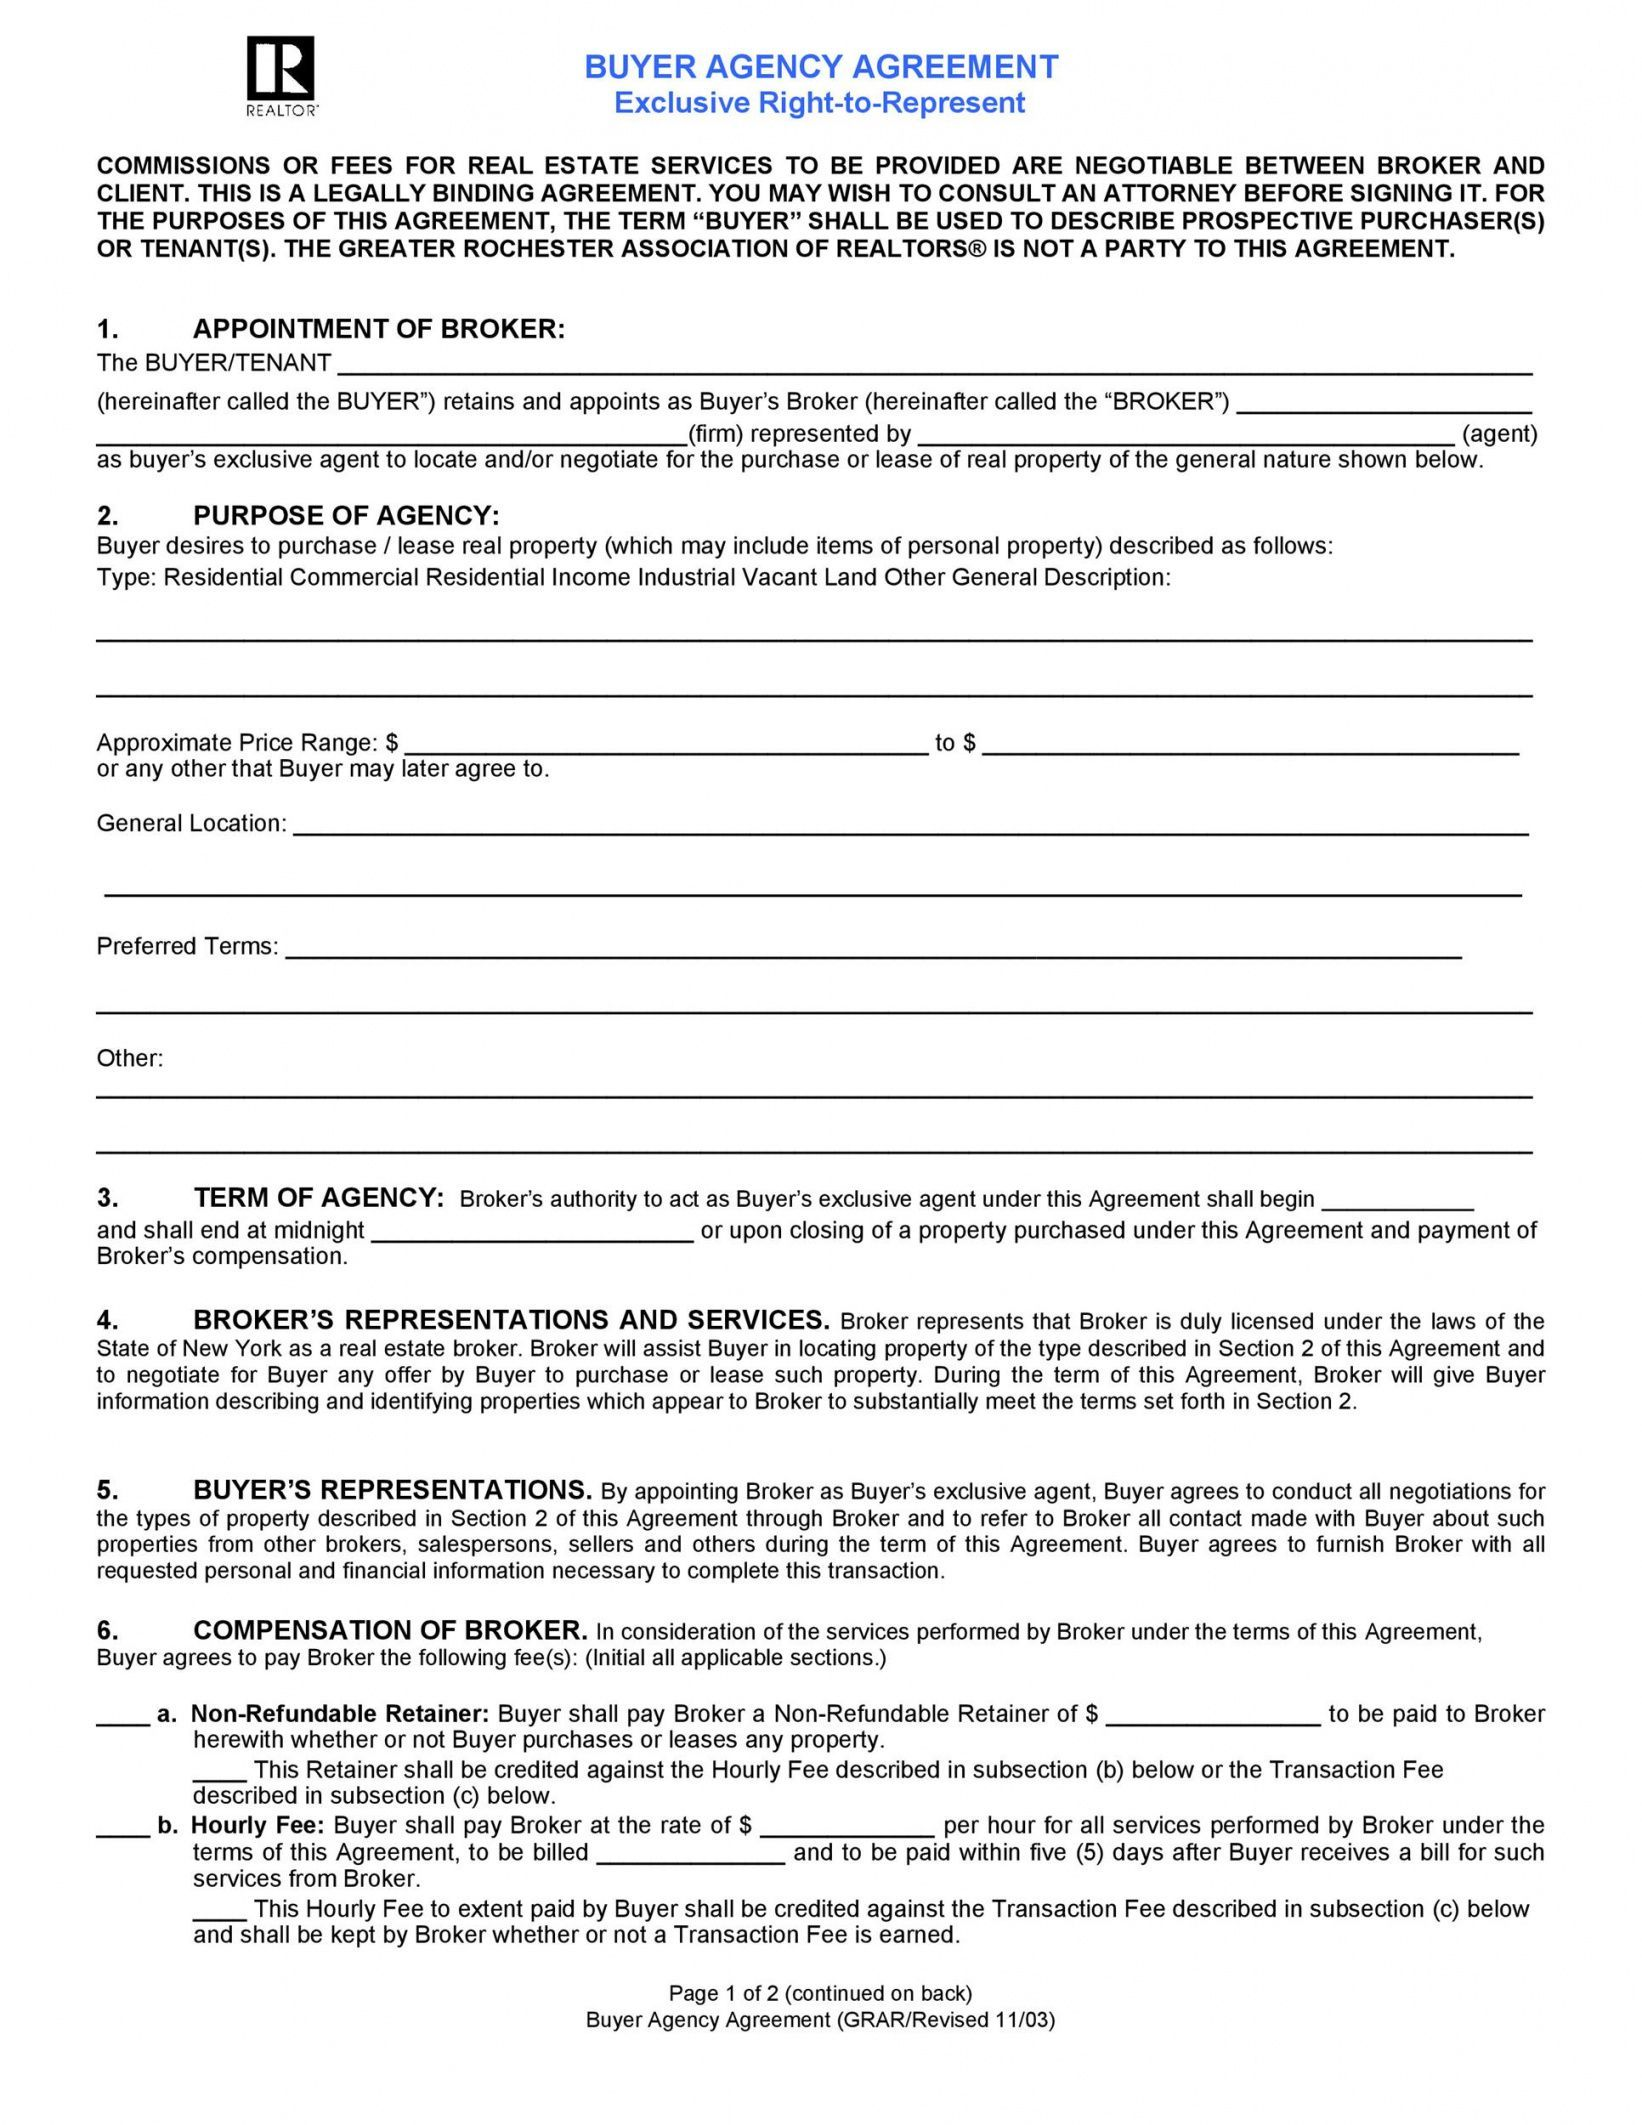 Explore Our Image Of Marketing Agency Agreement Template For Free Agreement Marketing Agency Legal Activity